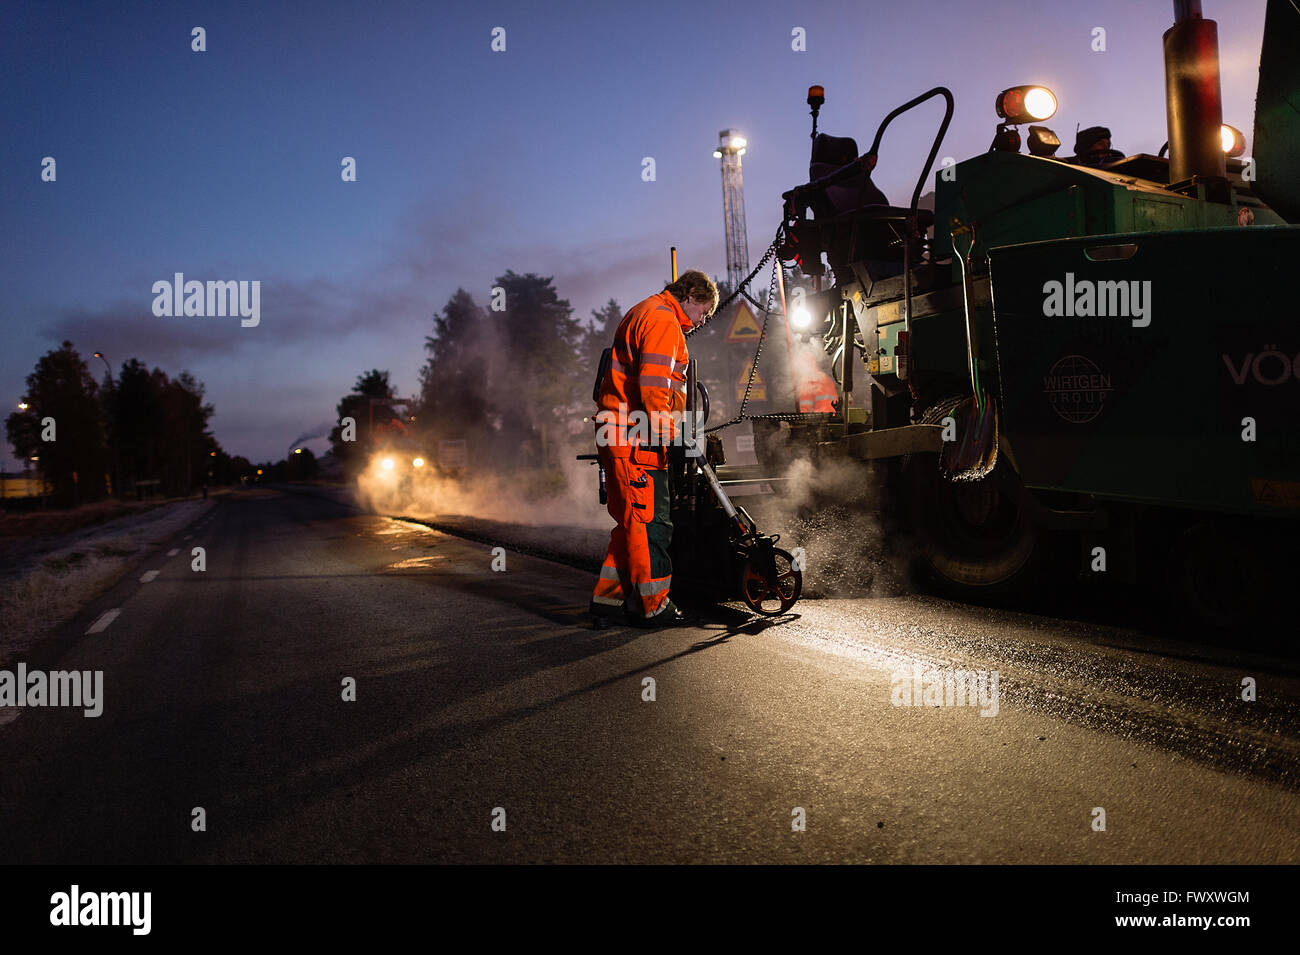 Sweden, Narke, Three manual workers repairing road - Stock Image